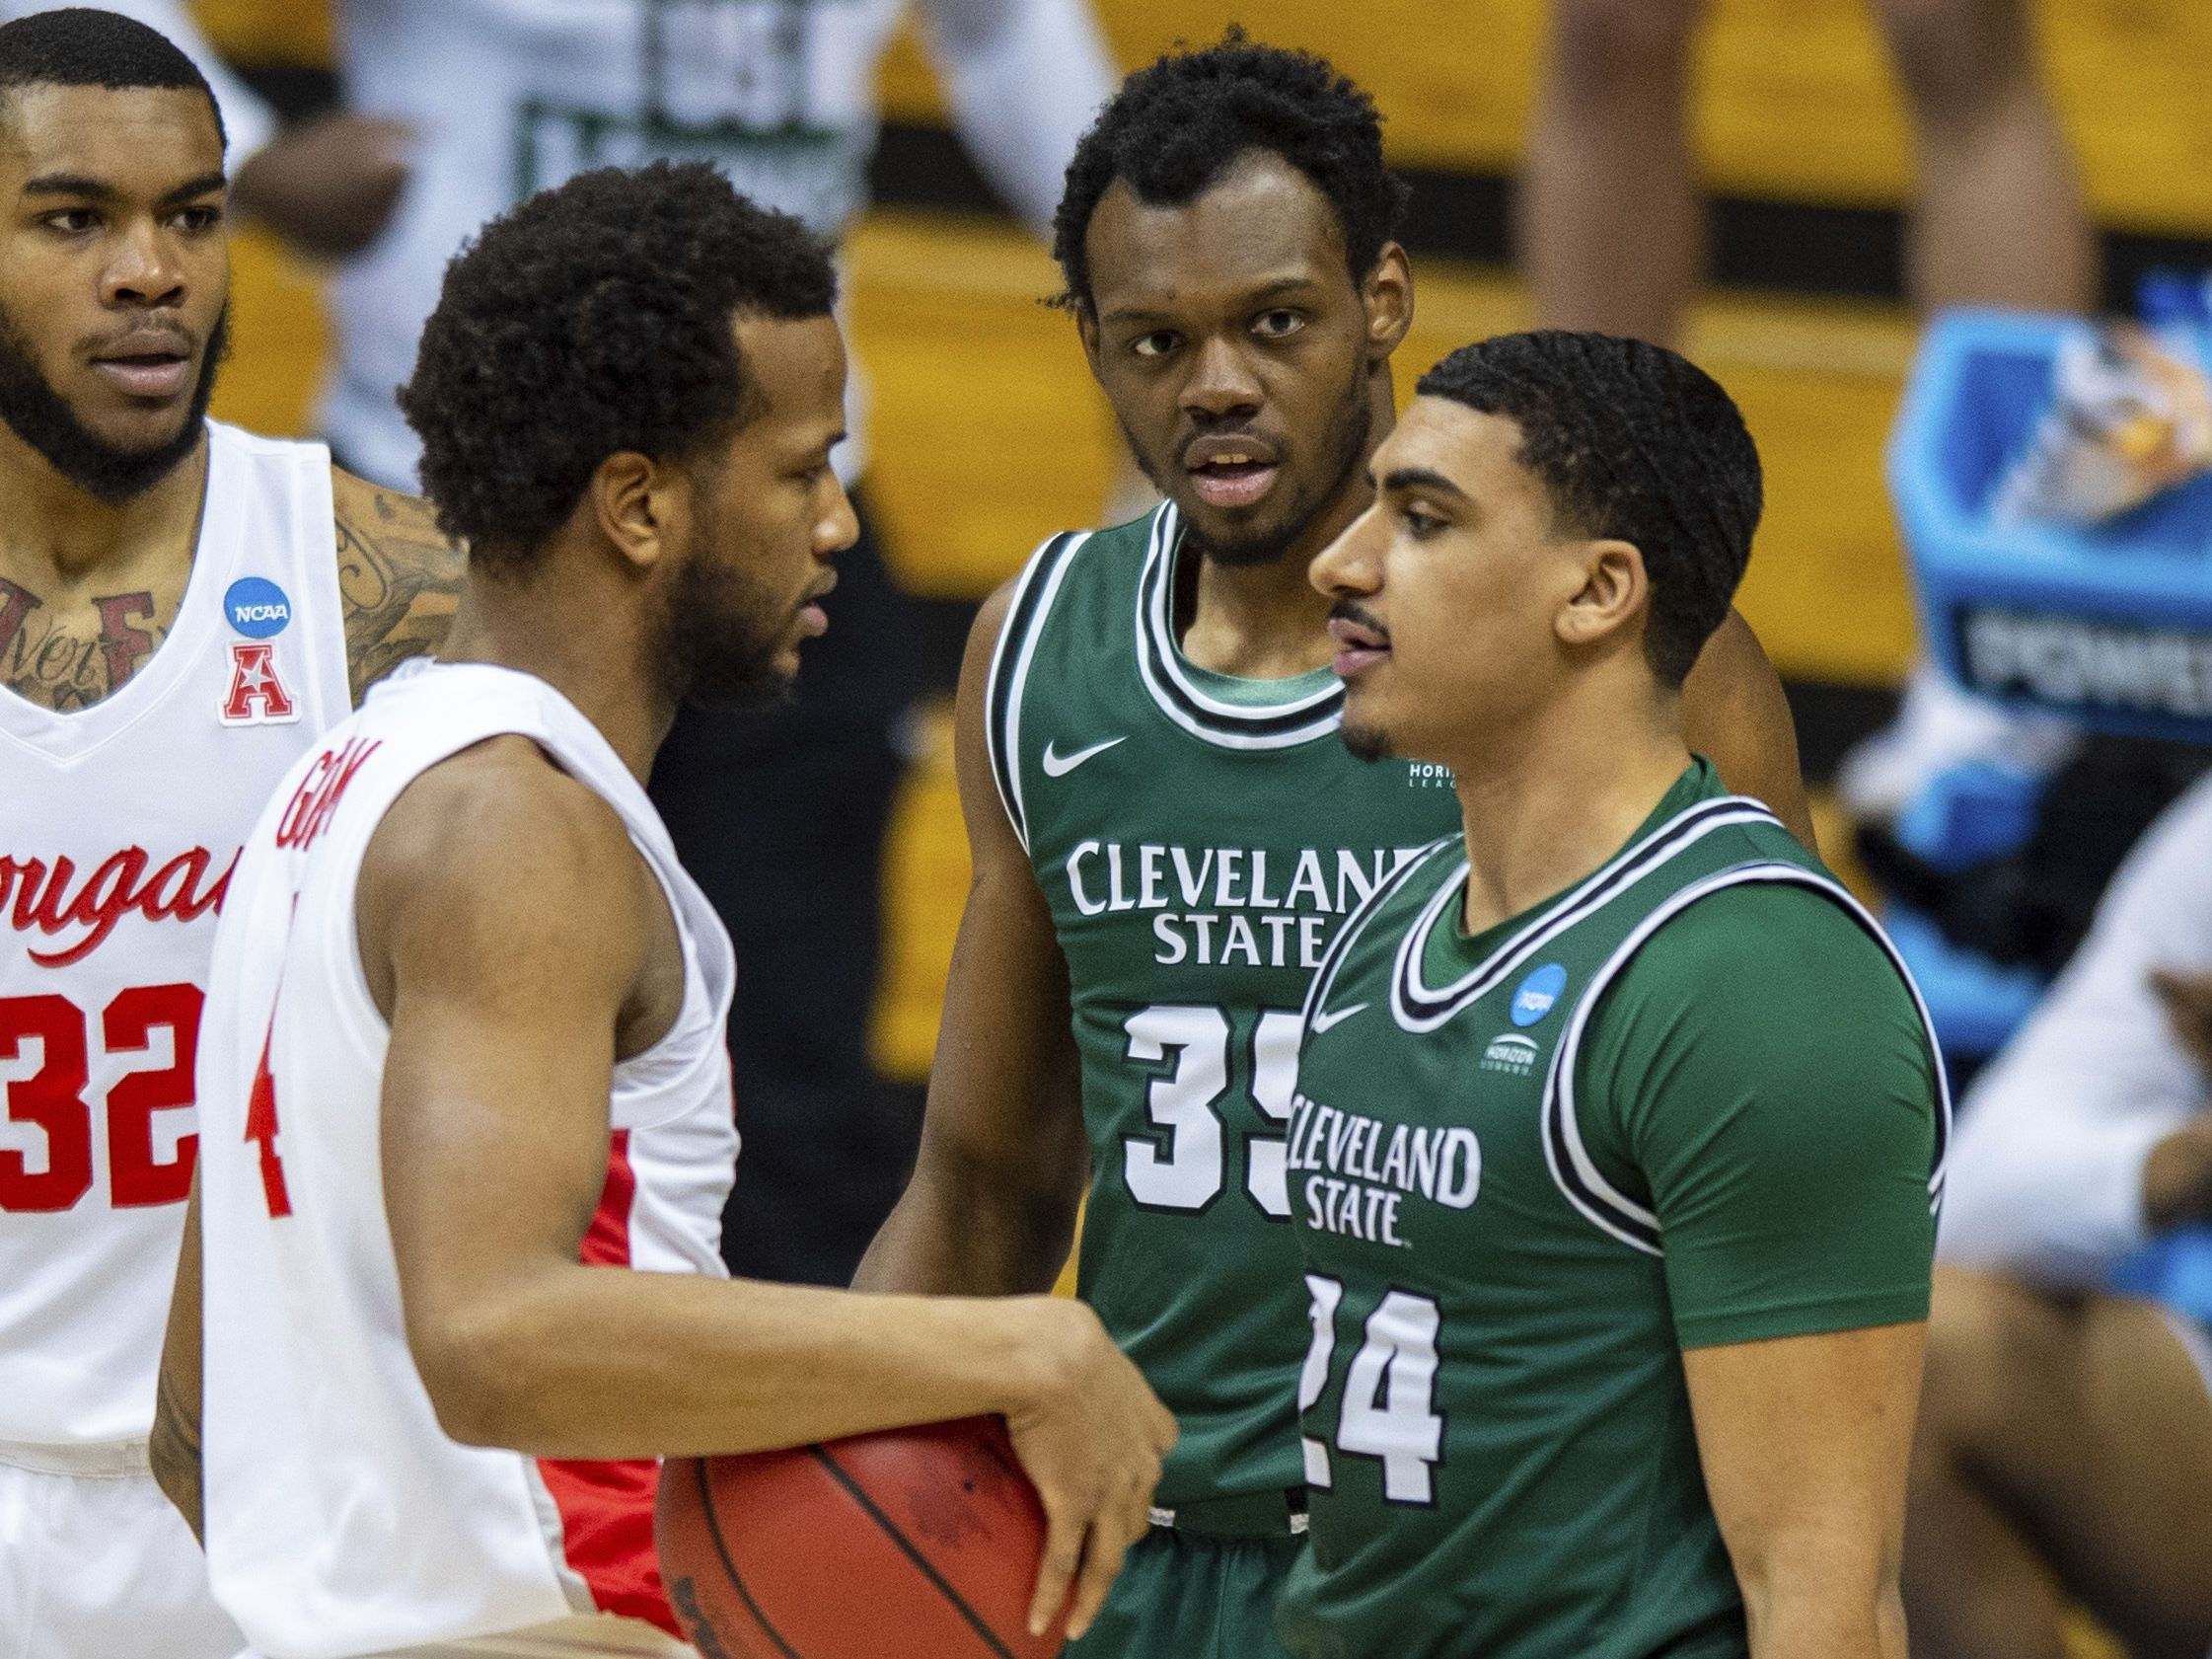 Magical season ends for Cleveland State in NCAA tourney loss to Houston